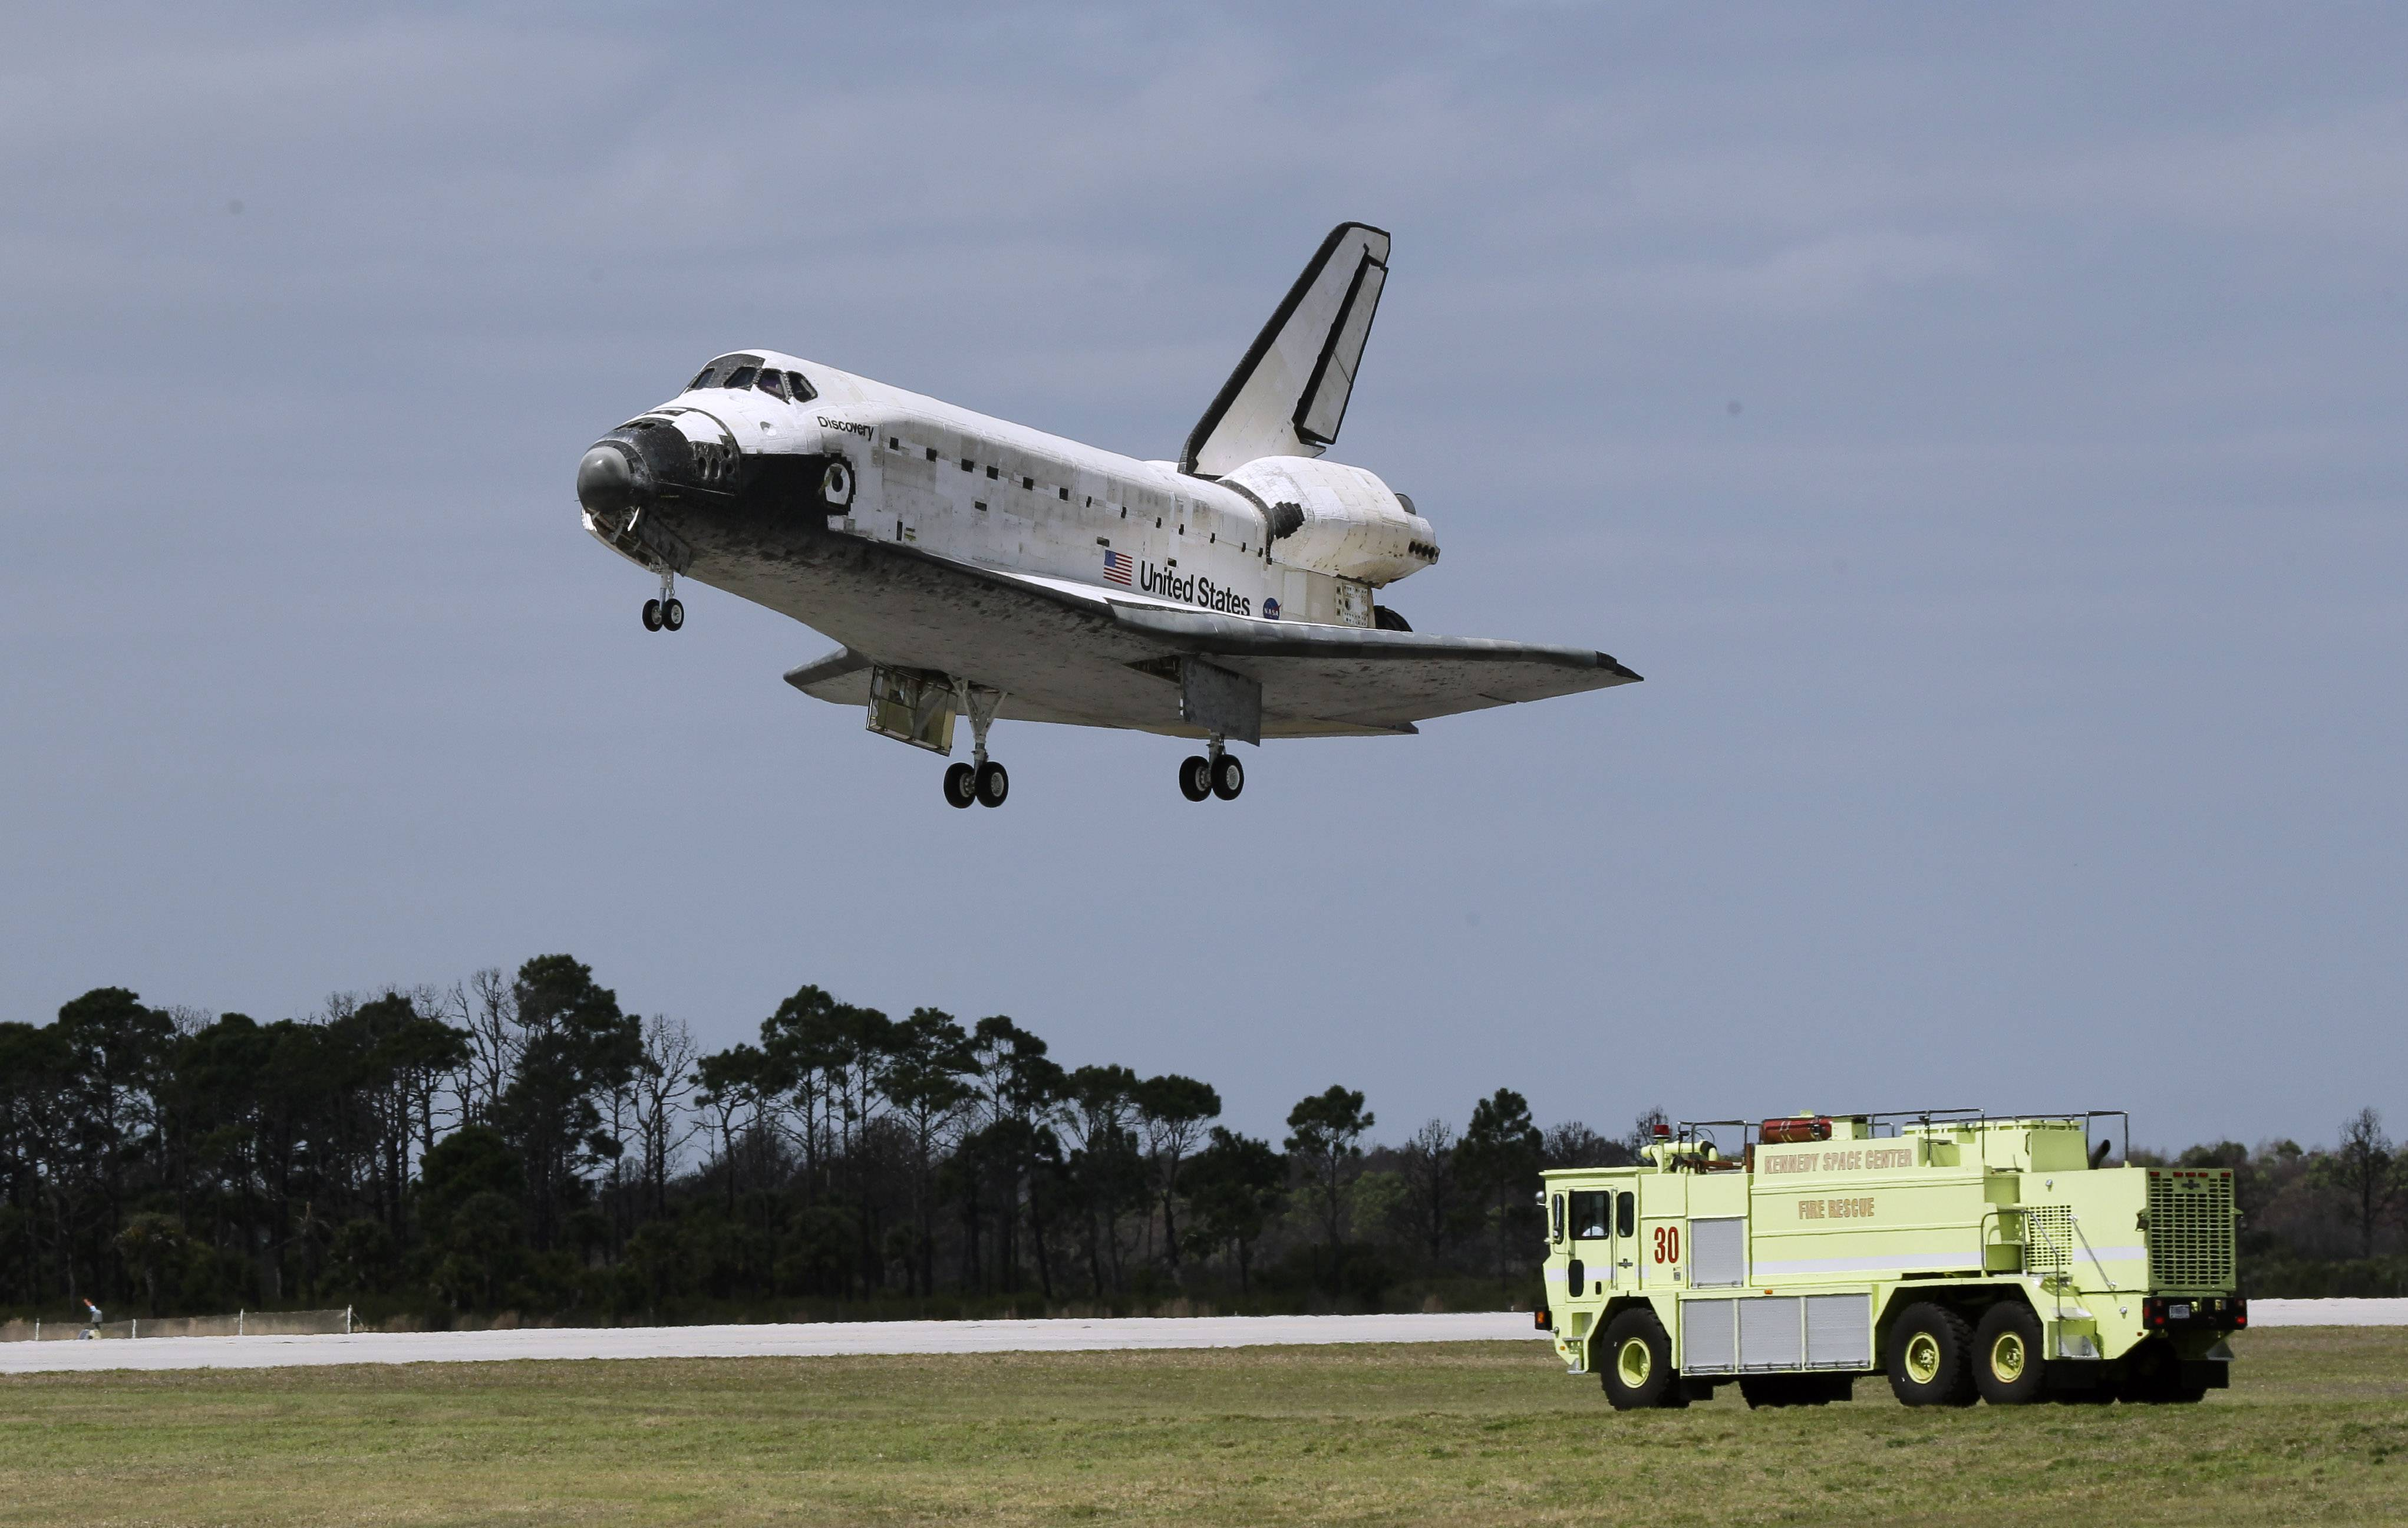 An emergency vehicle stands by near the runway as space shuttle Discovery lands at the Kennedy Space Center in Cape Canaveral, Fla.